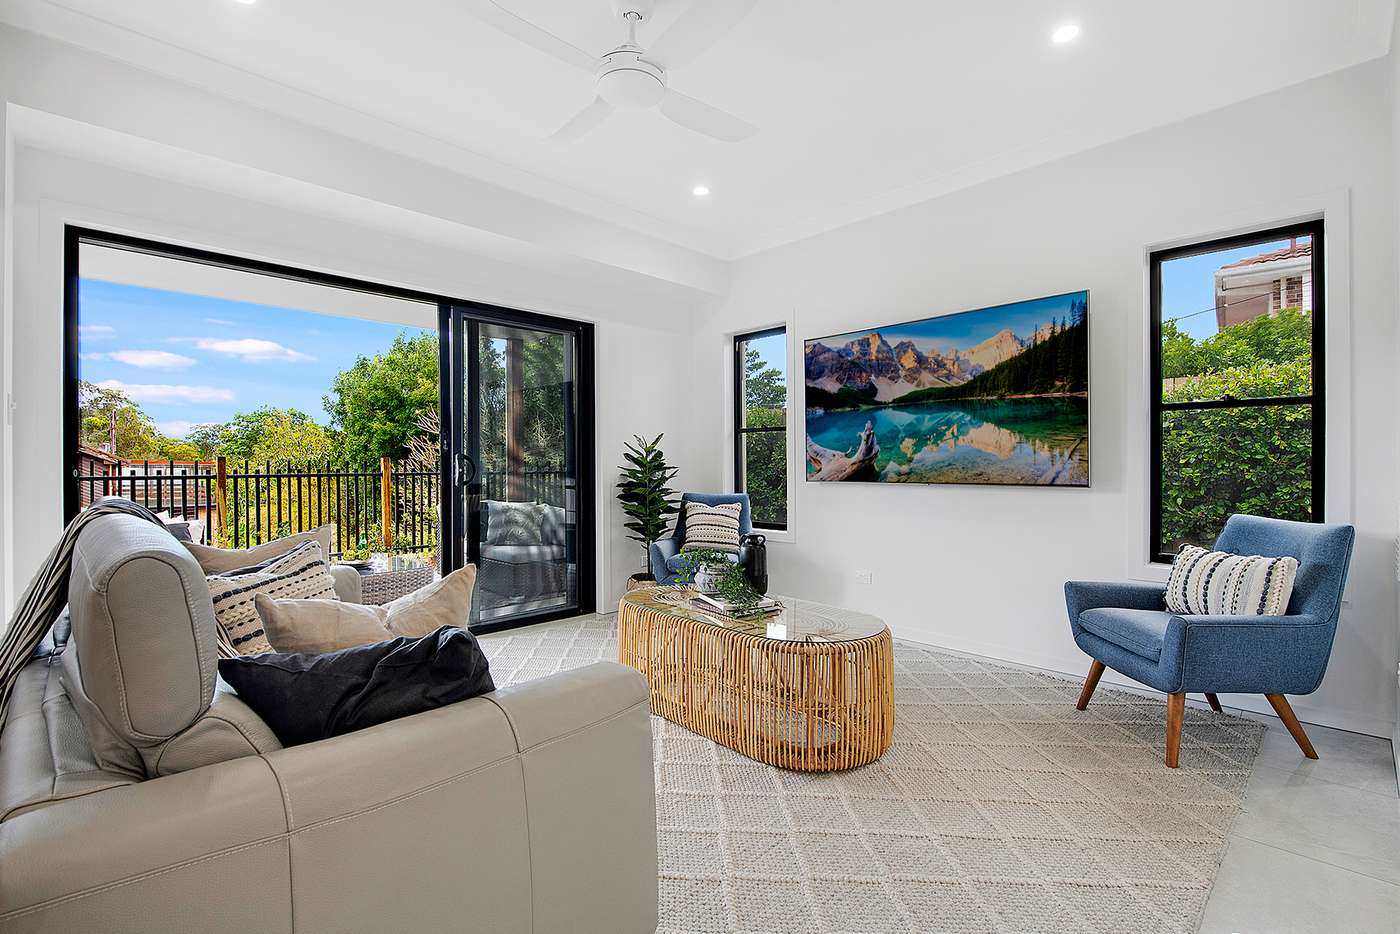 Sixth view of Homely house listing, 6/20 Cecilia Close, Carina Heights QLD 4152